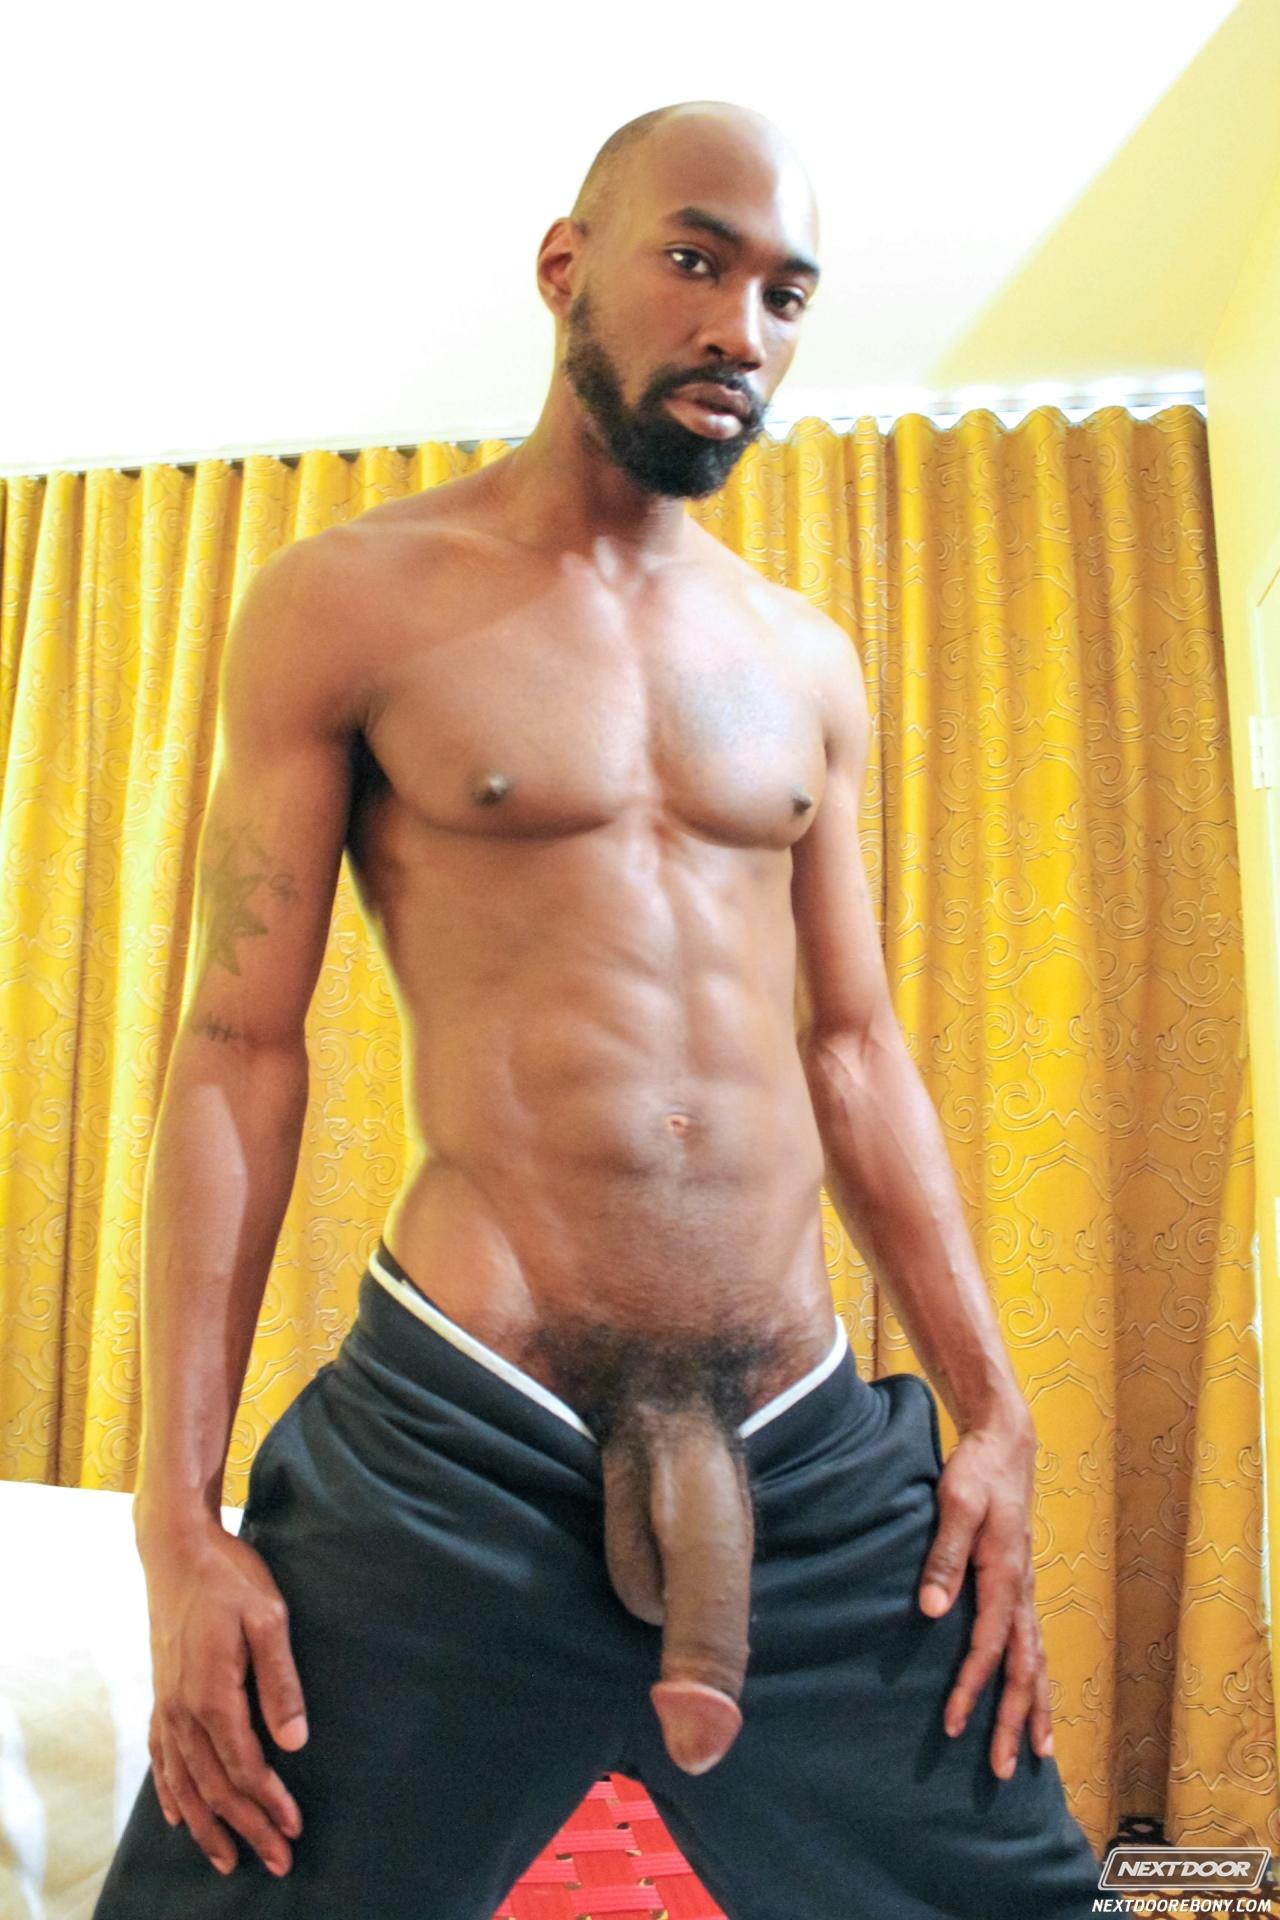 black guys with big dicks porn Big cocked gay men Chad Davis and Chris Cox porn 1 2 3 4 5